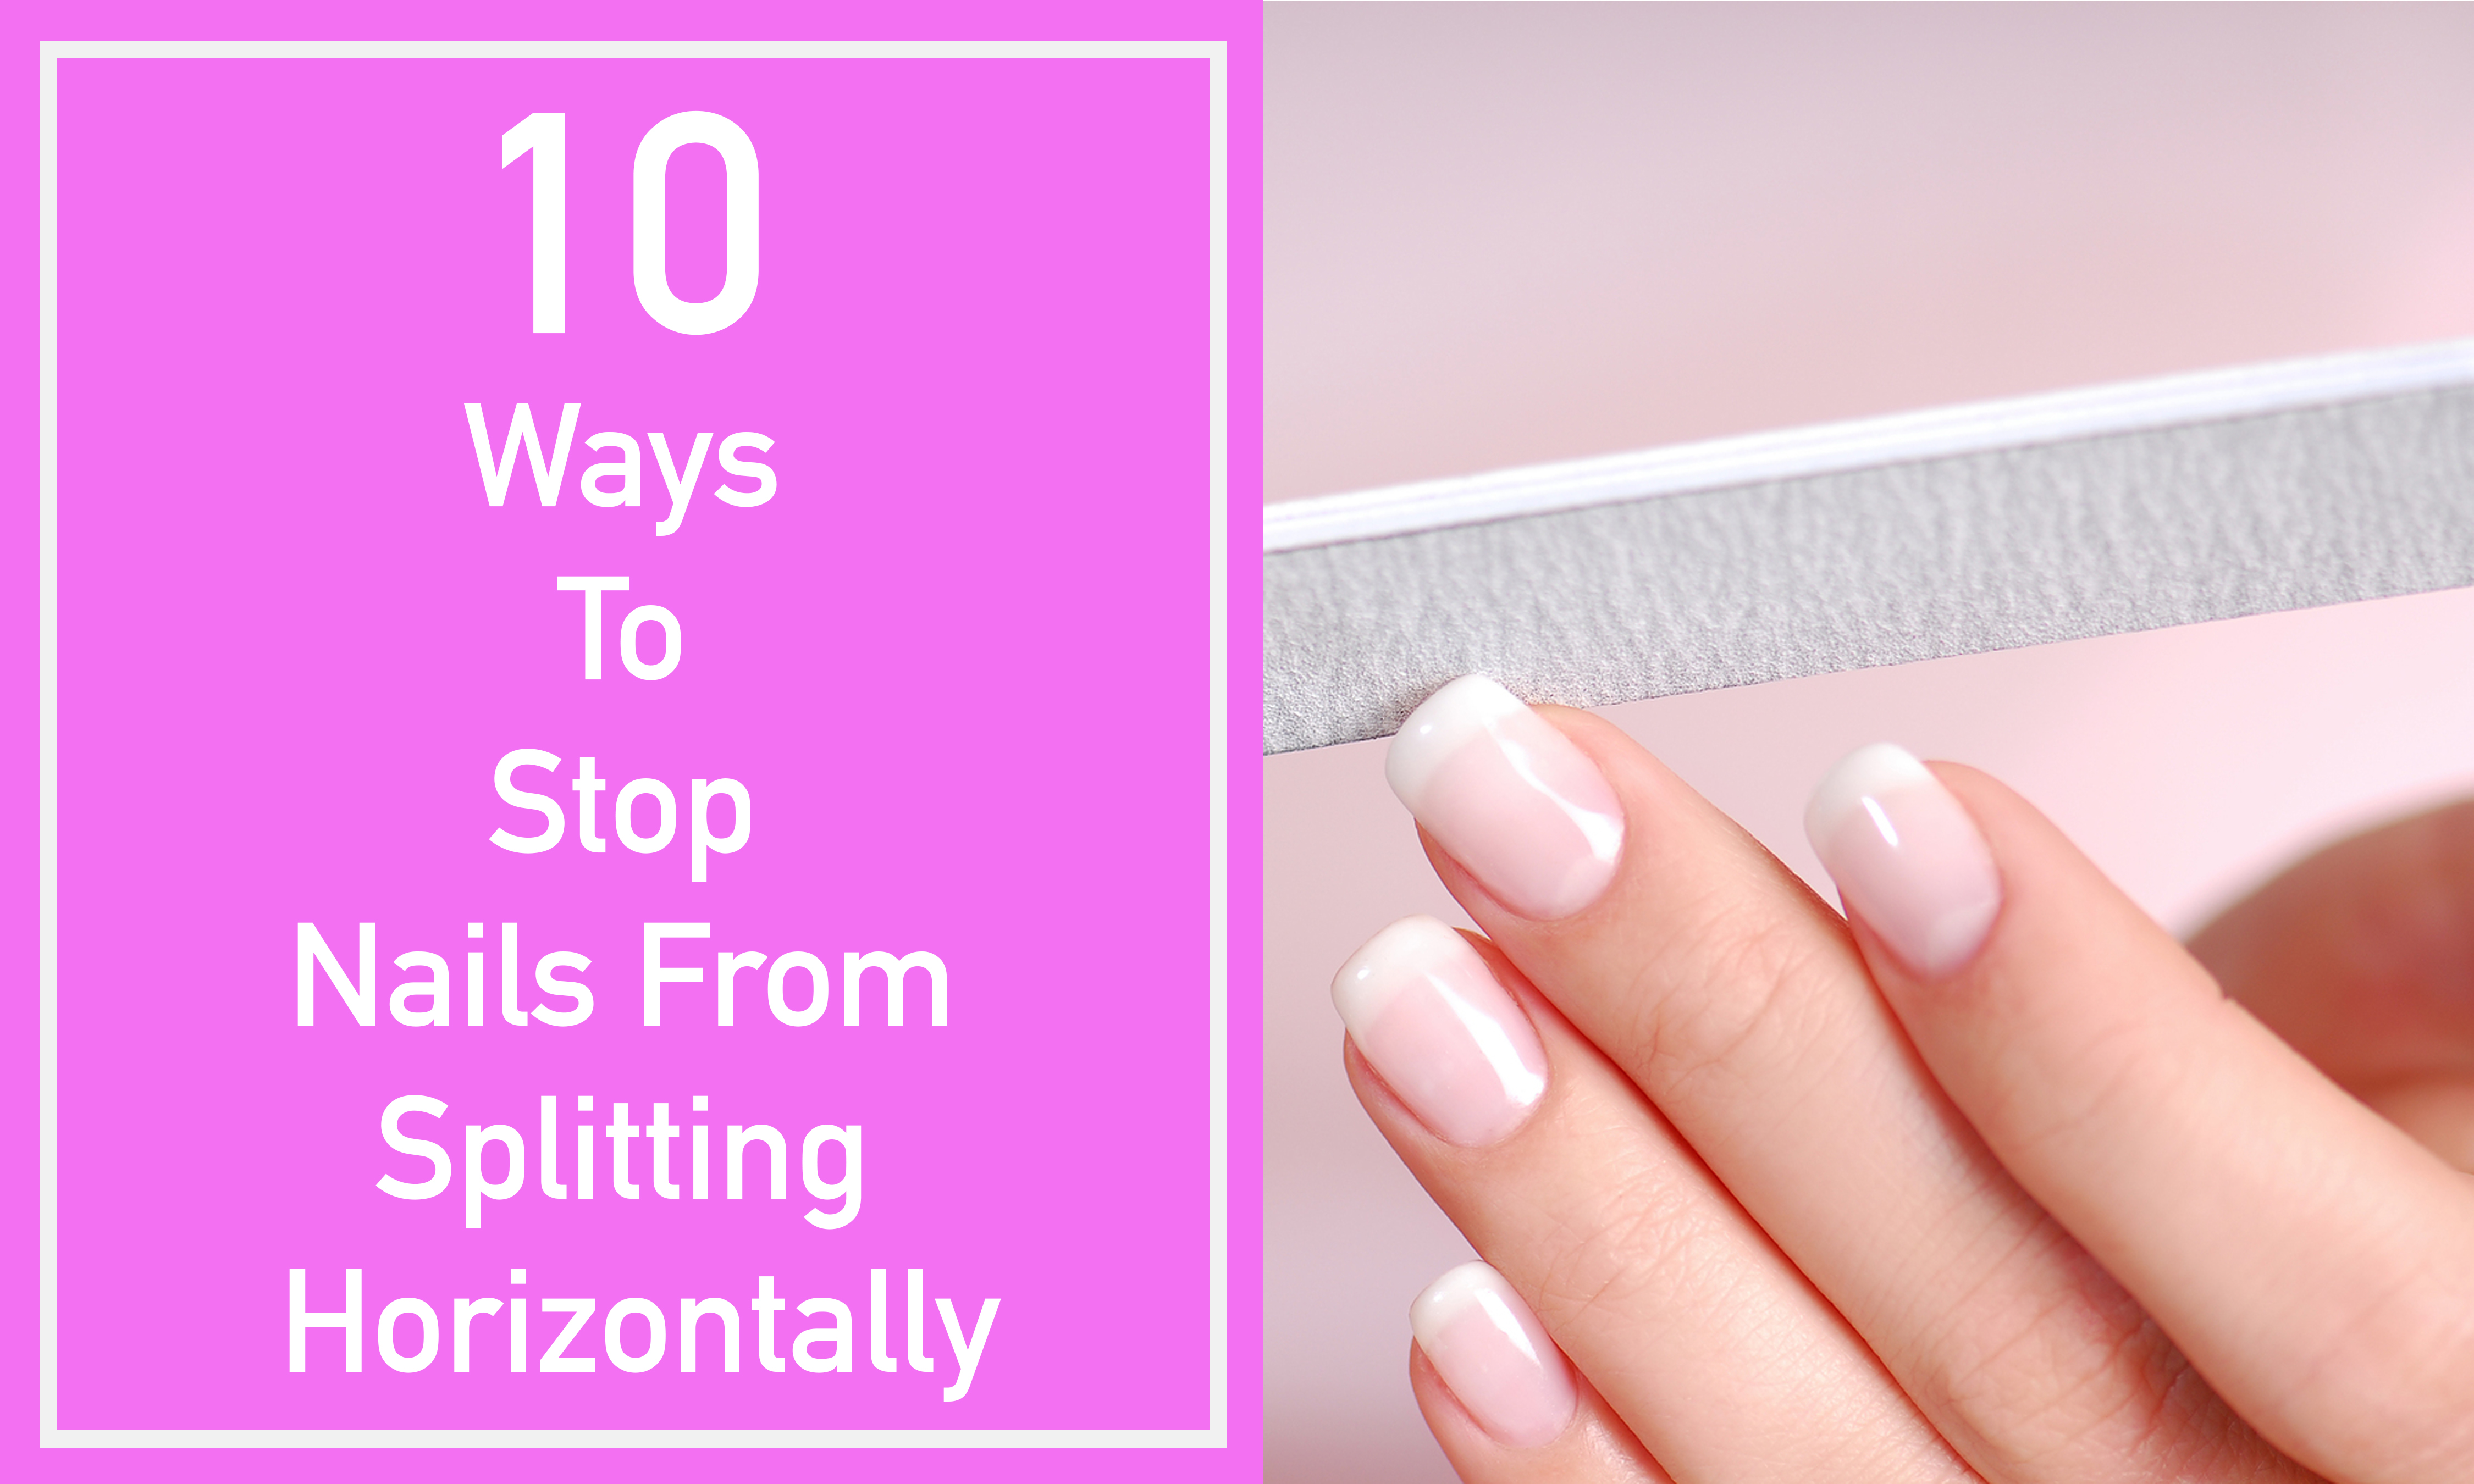 HOW TO STOP NAILS SPLITTING HORIZONTALLY